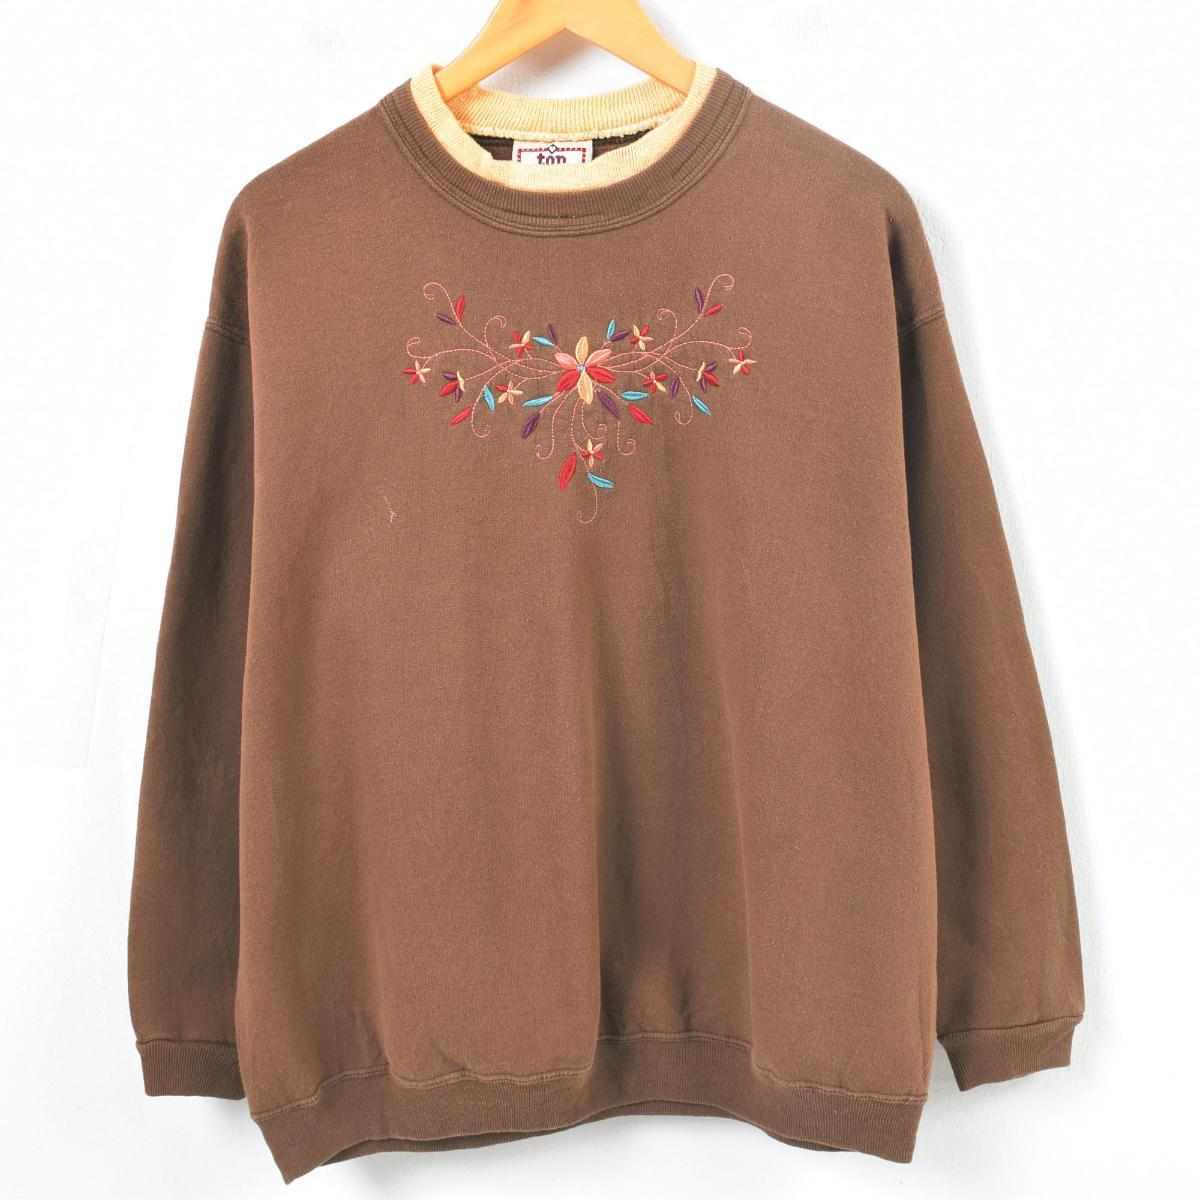 Vintage Clothing Jam Sweat Shirt Trainer Ladys L Wap3309 With The